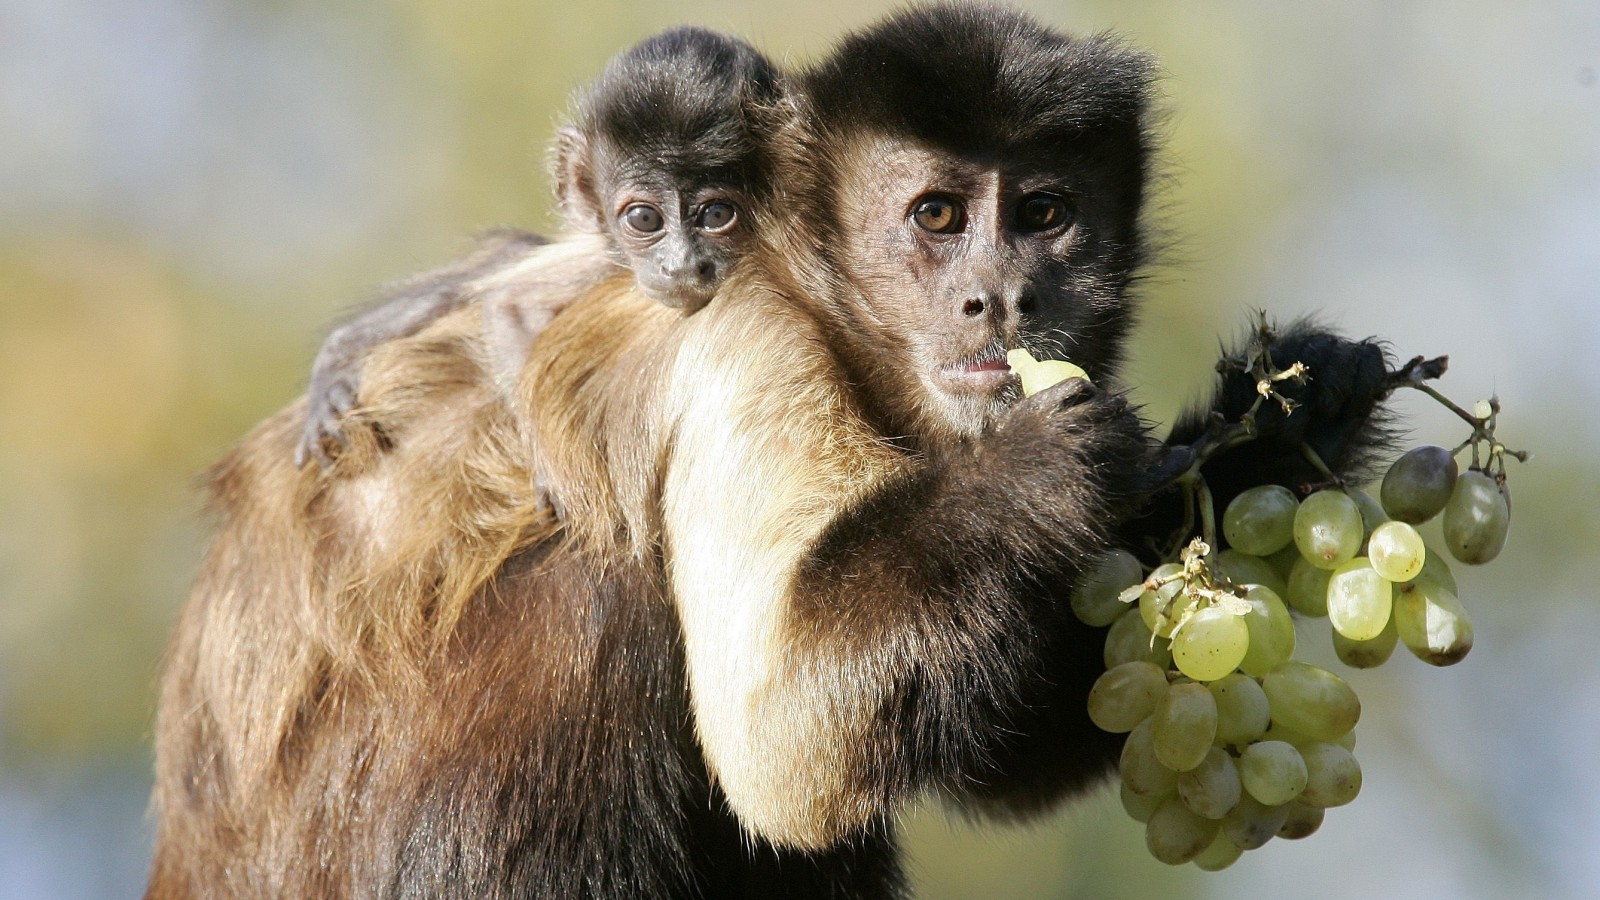 She-Devil, a 3 week-old Capucin monkey, rests on the shoulder of her mother Impie at the Olmense Zoo in Olmen, Belgium October 18, 2007.  REUTERS/Yves Herman   (BELGIUM) - RTR1V224